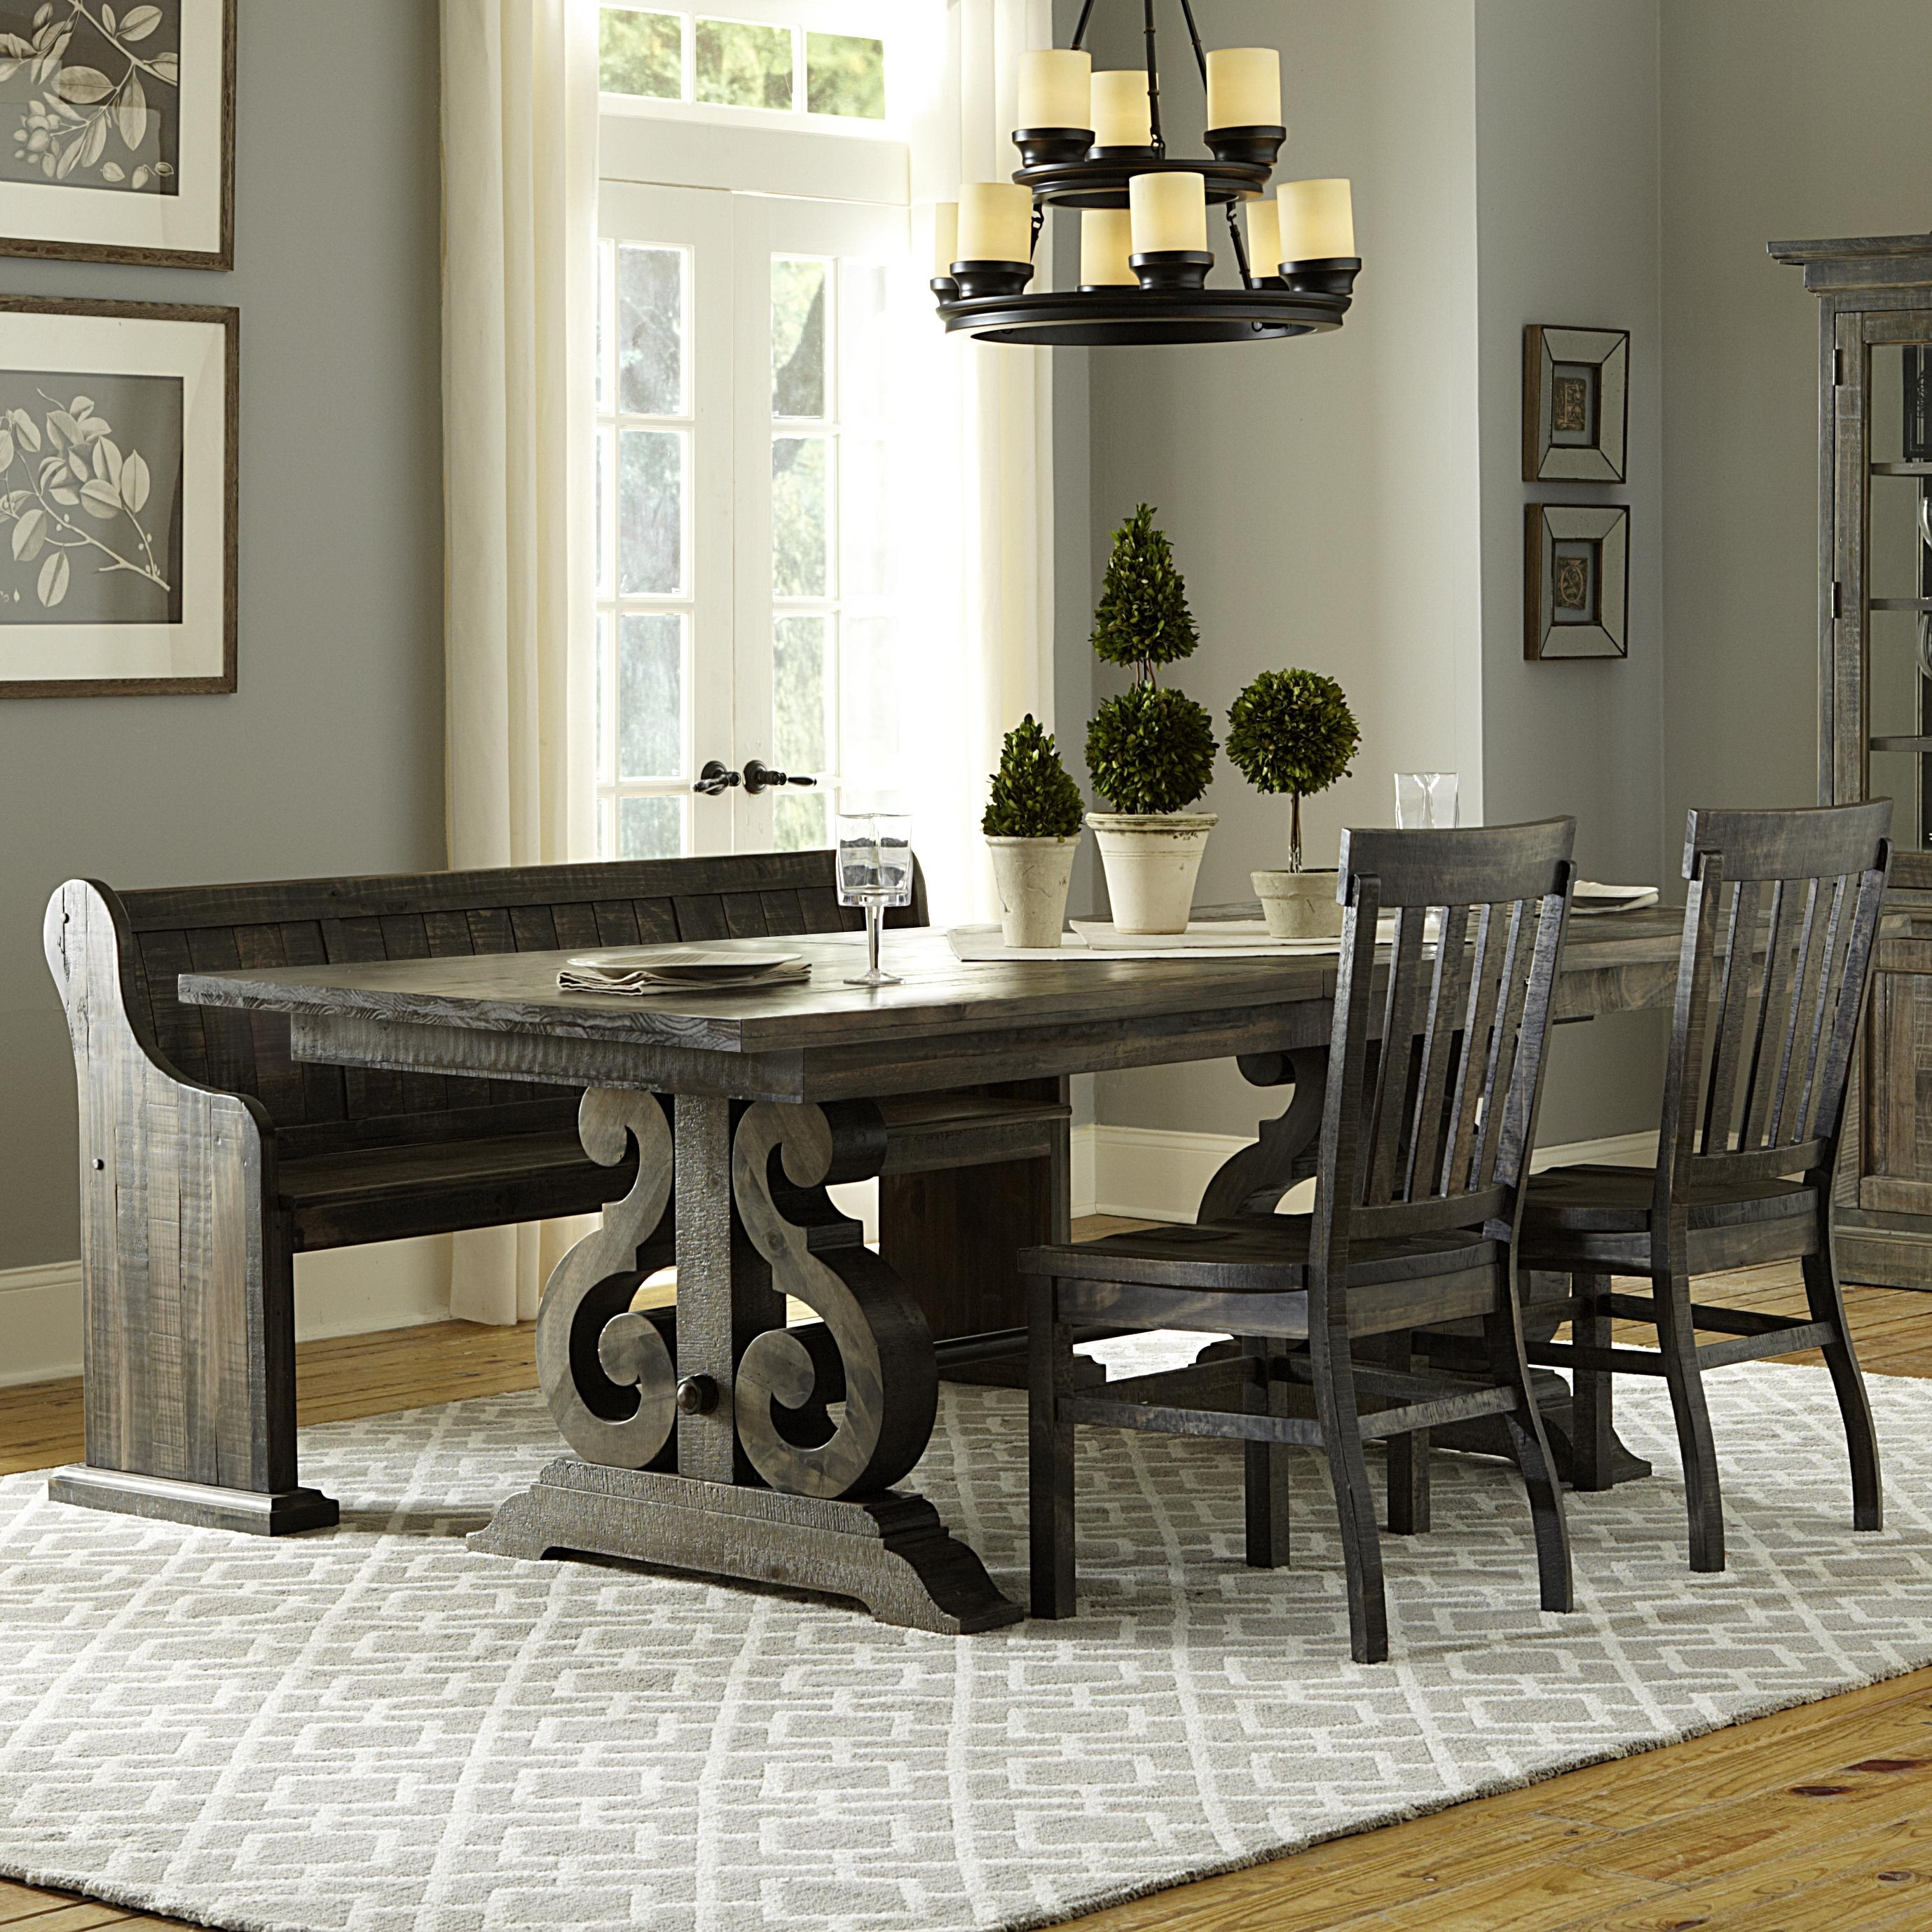 Table And Chair Sets | Baton Rouge And Lafayette, Louisiana Table In Most Up To Date Market 6 Piece Dining Sets With Host And Side Chairs (Image 18 of 20)